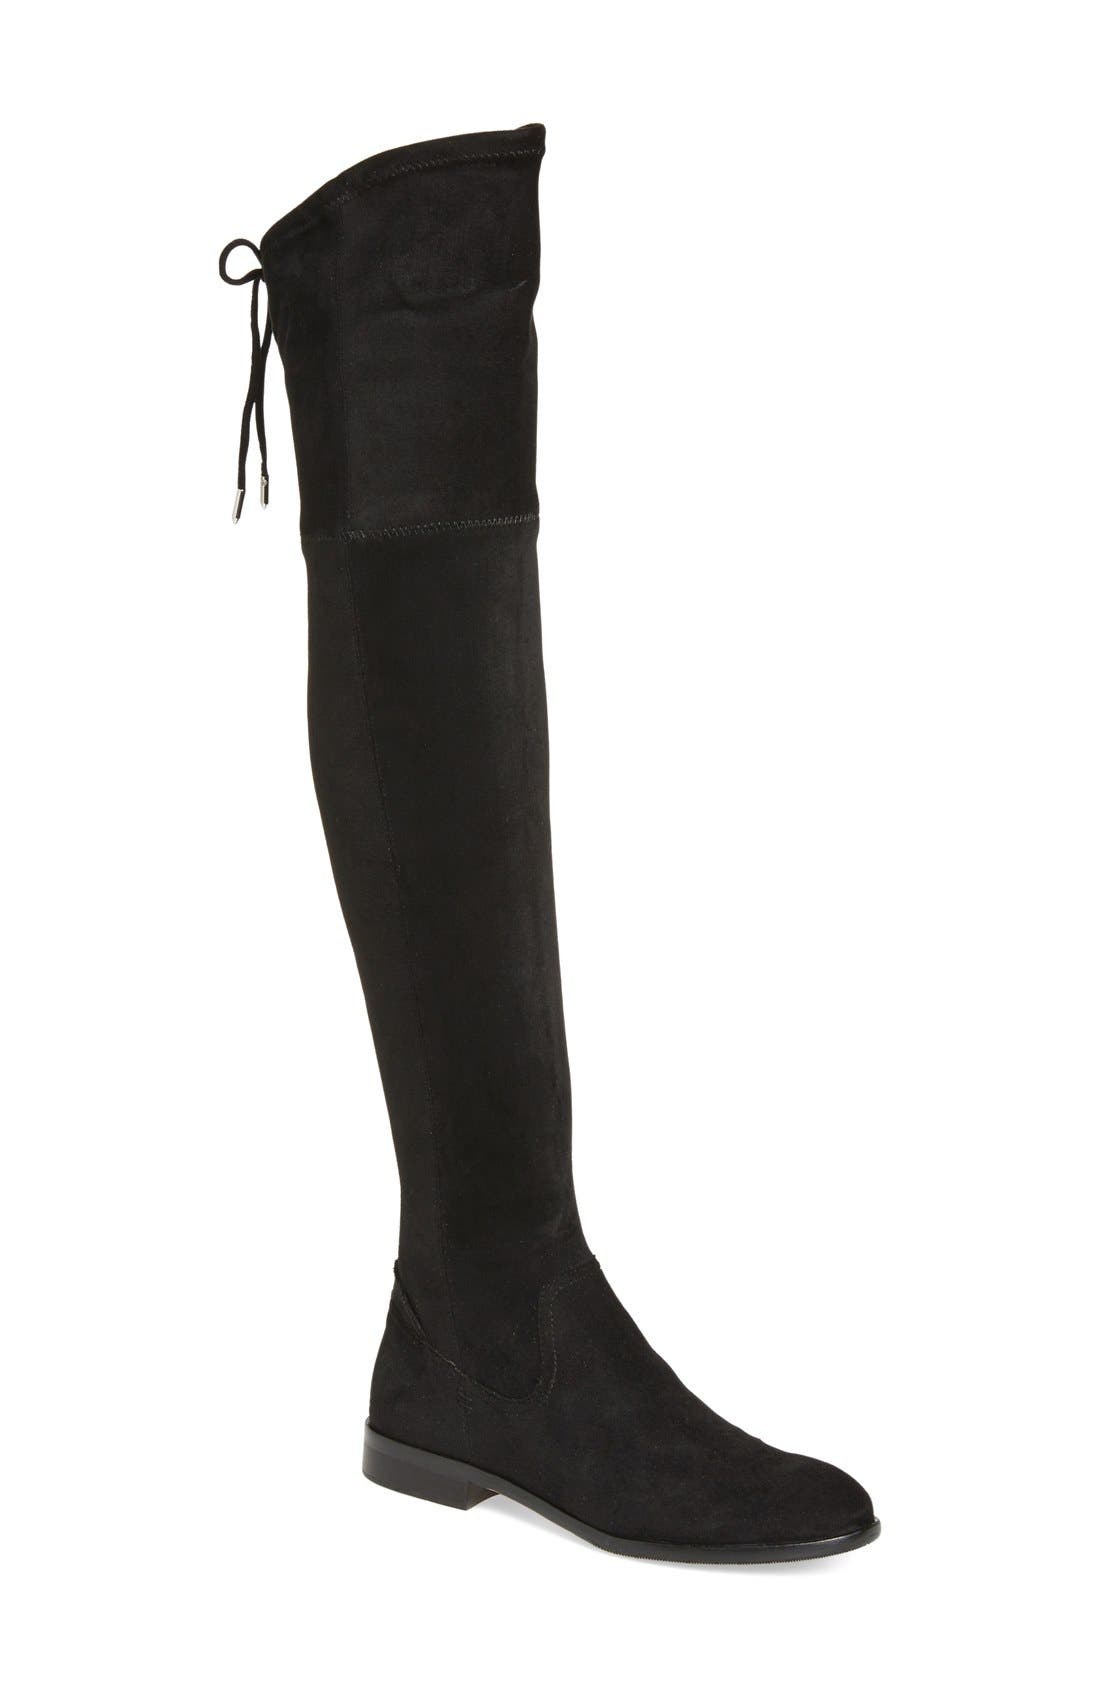 'Neely' Over the Knee Boot,                         Main,                         color, Black Stretch Suede